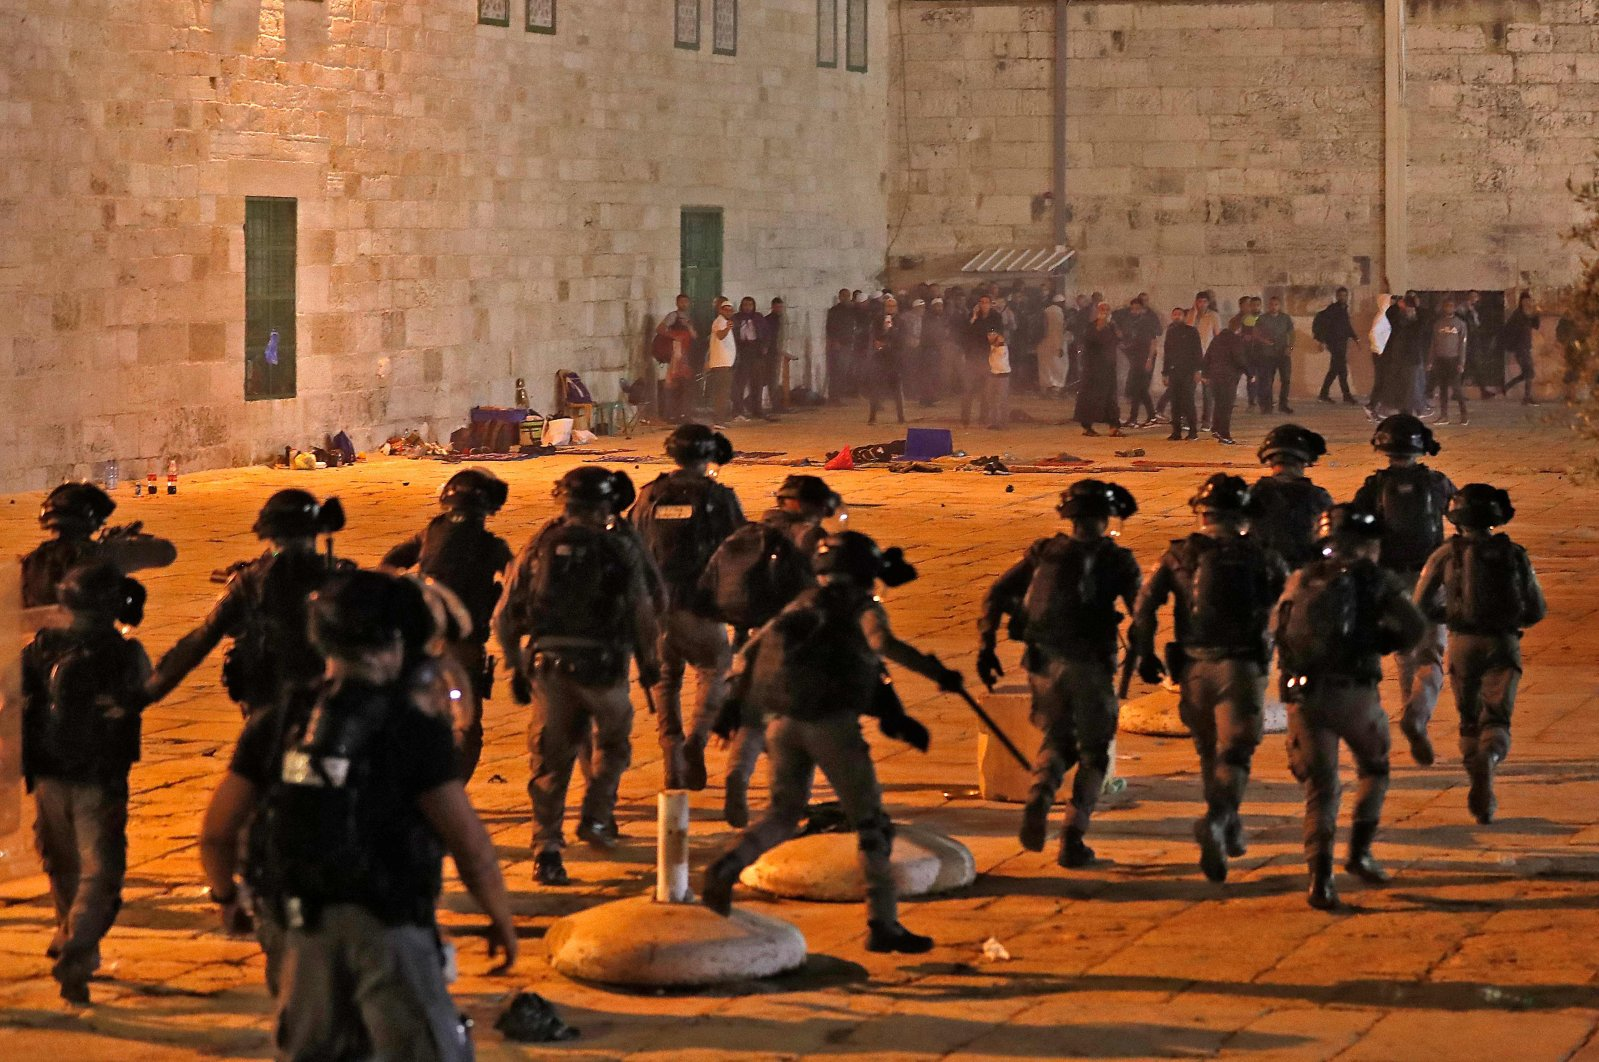 Israeli security forces advance as they attack Palestinian worshippers at the Al-Aqsa Mosque in East Jerusalem, May 7, 2021. (AFP Photo)